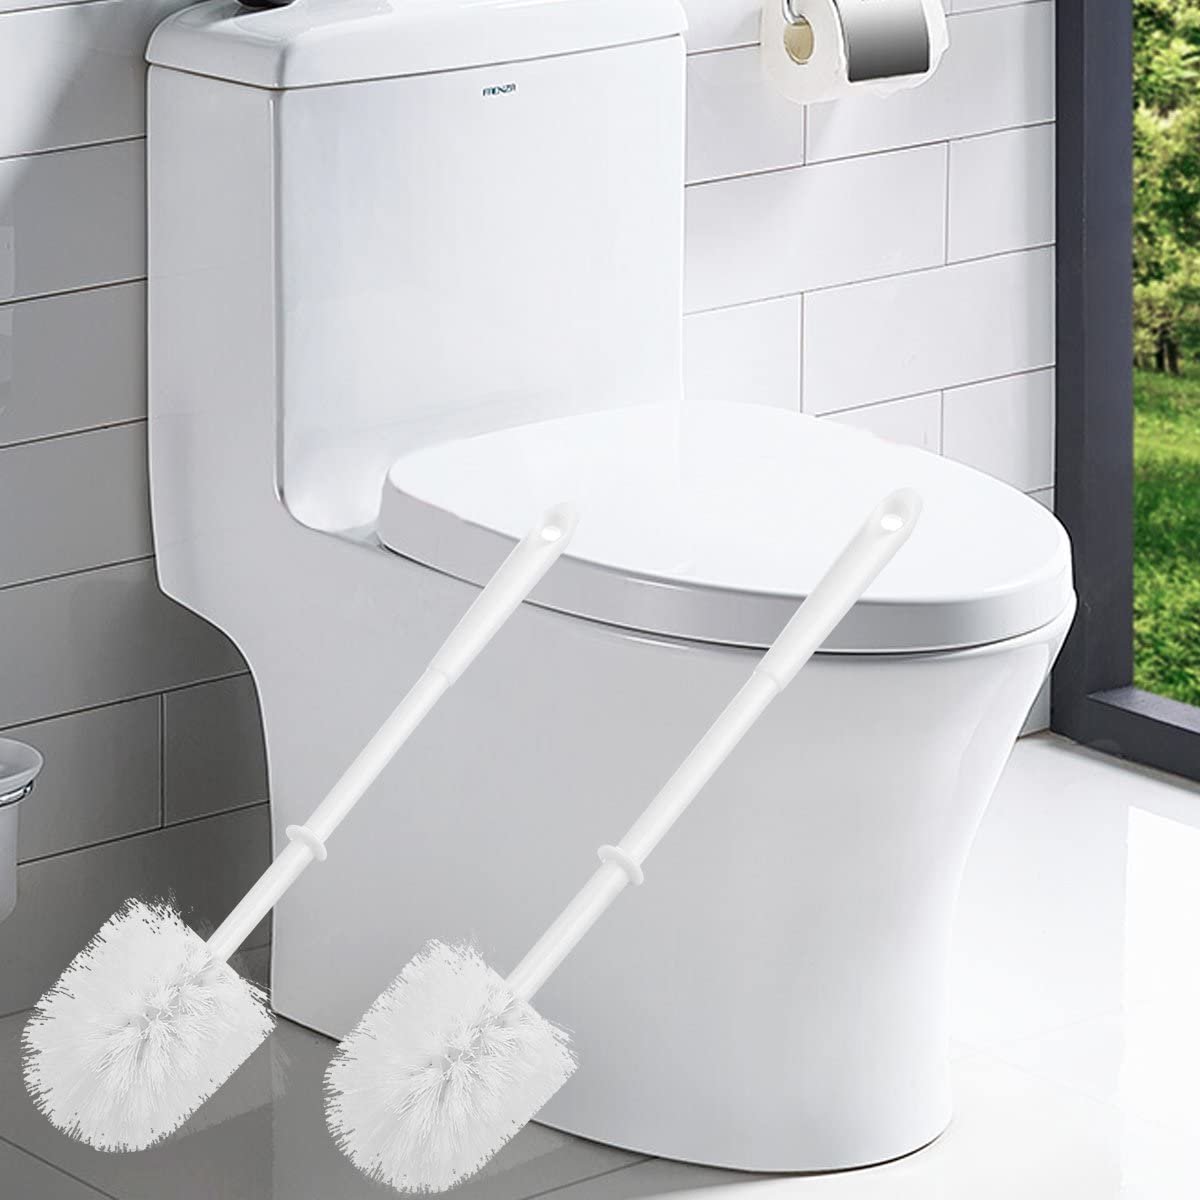 Ulable Toilet Brushes And Holders Toilet Brush White with Soft Bristle 4 x Toilet Brush